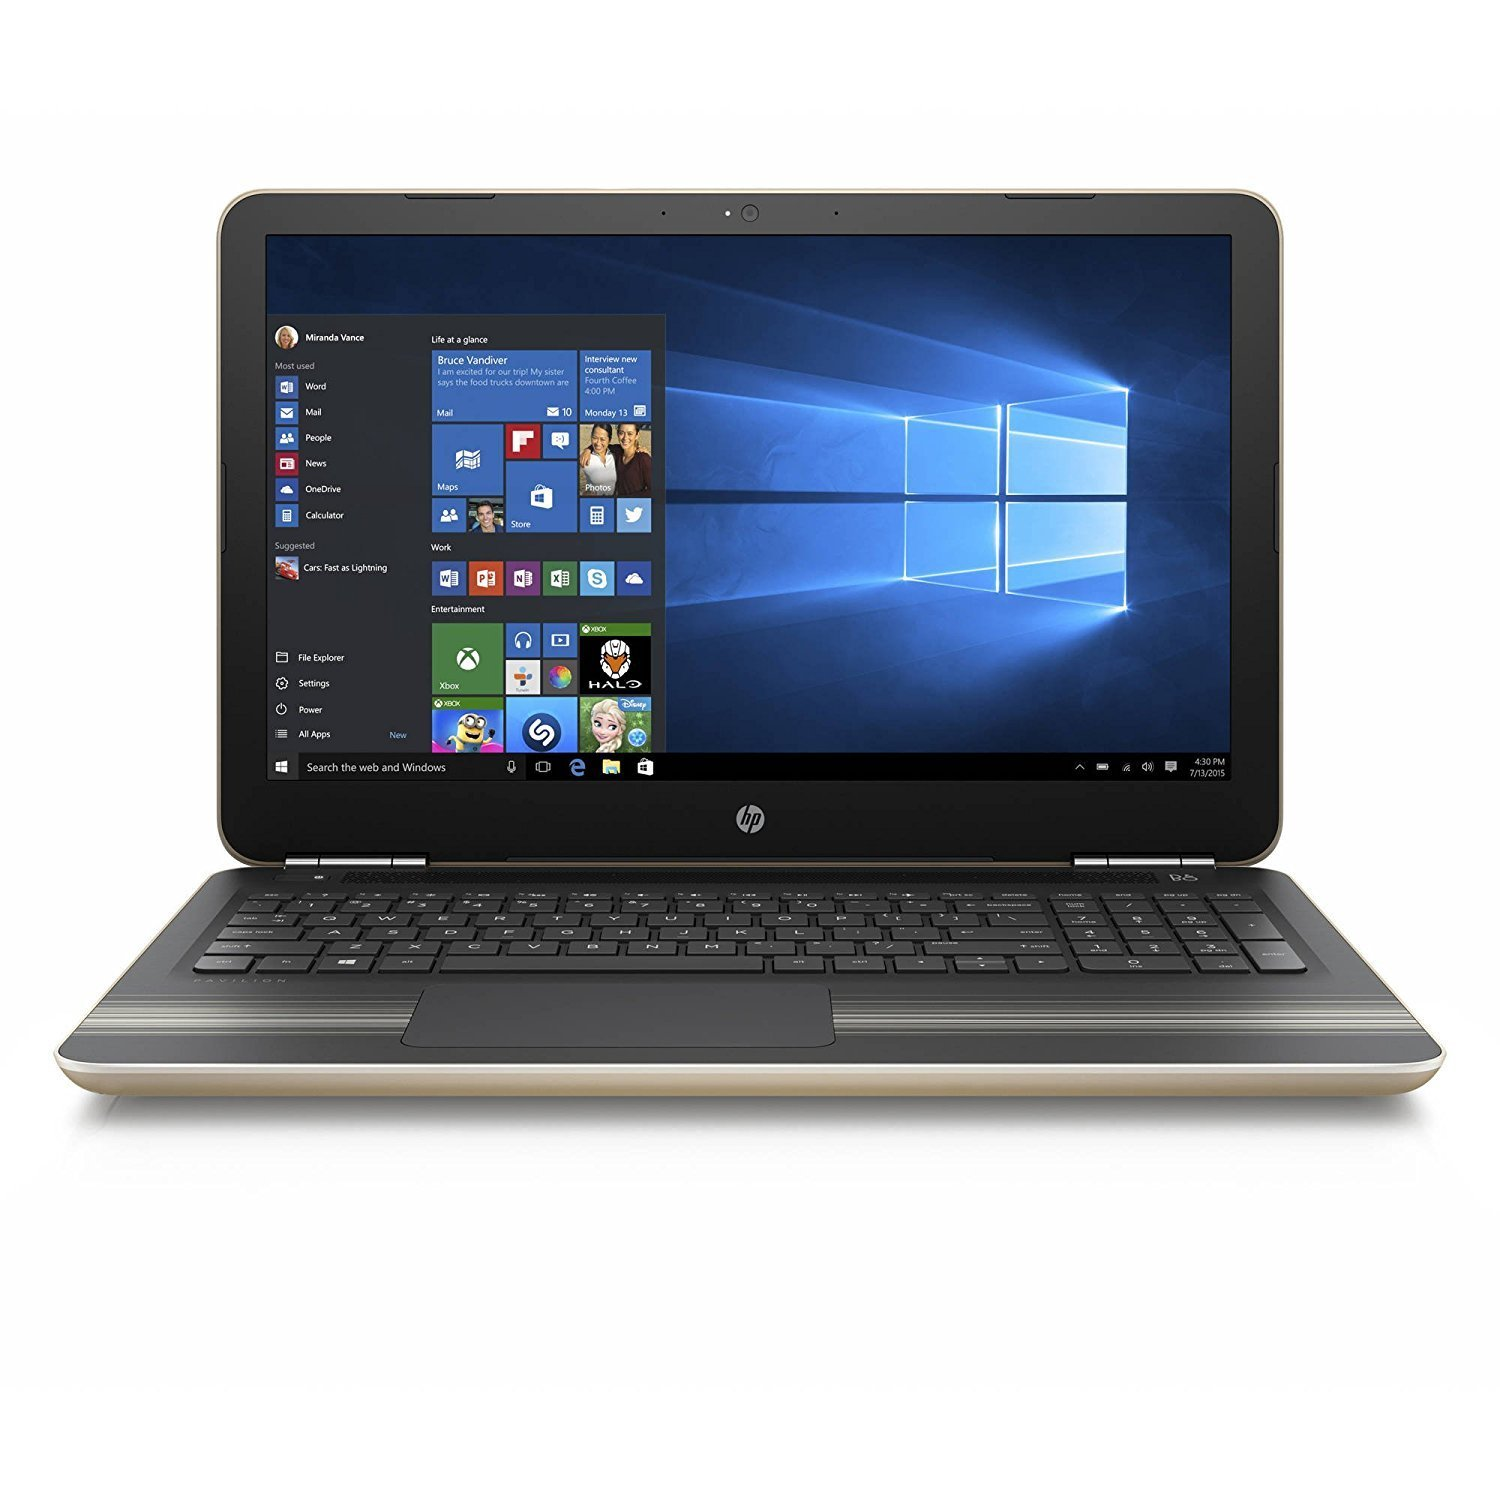 HP Pavilion 15.6-Inch Flagship Laptop Computer (Intel Core i5-6200U up to 2.8GHz, 8GB RAM, 1TB HDD, DVD, Wifi, Windows 10 Home) (Certified Refurbished)